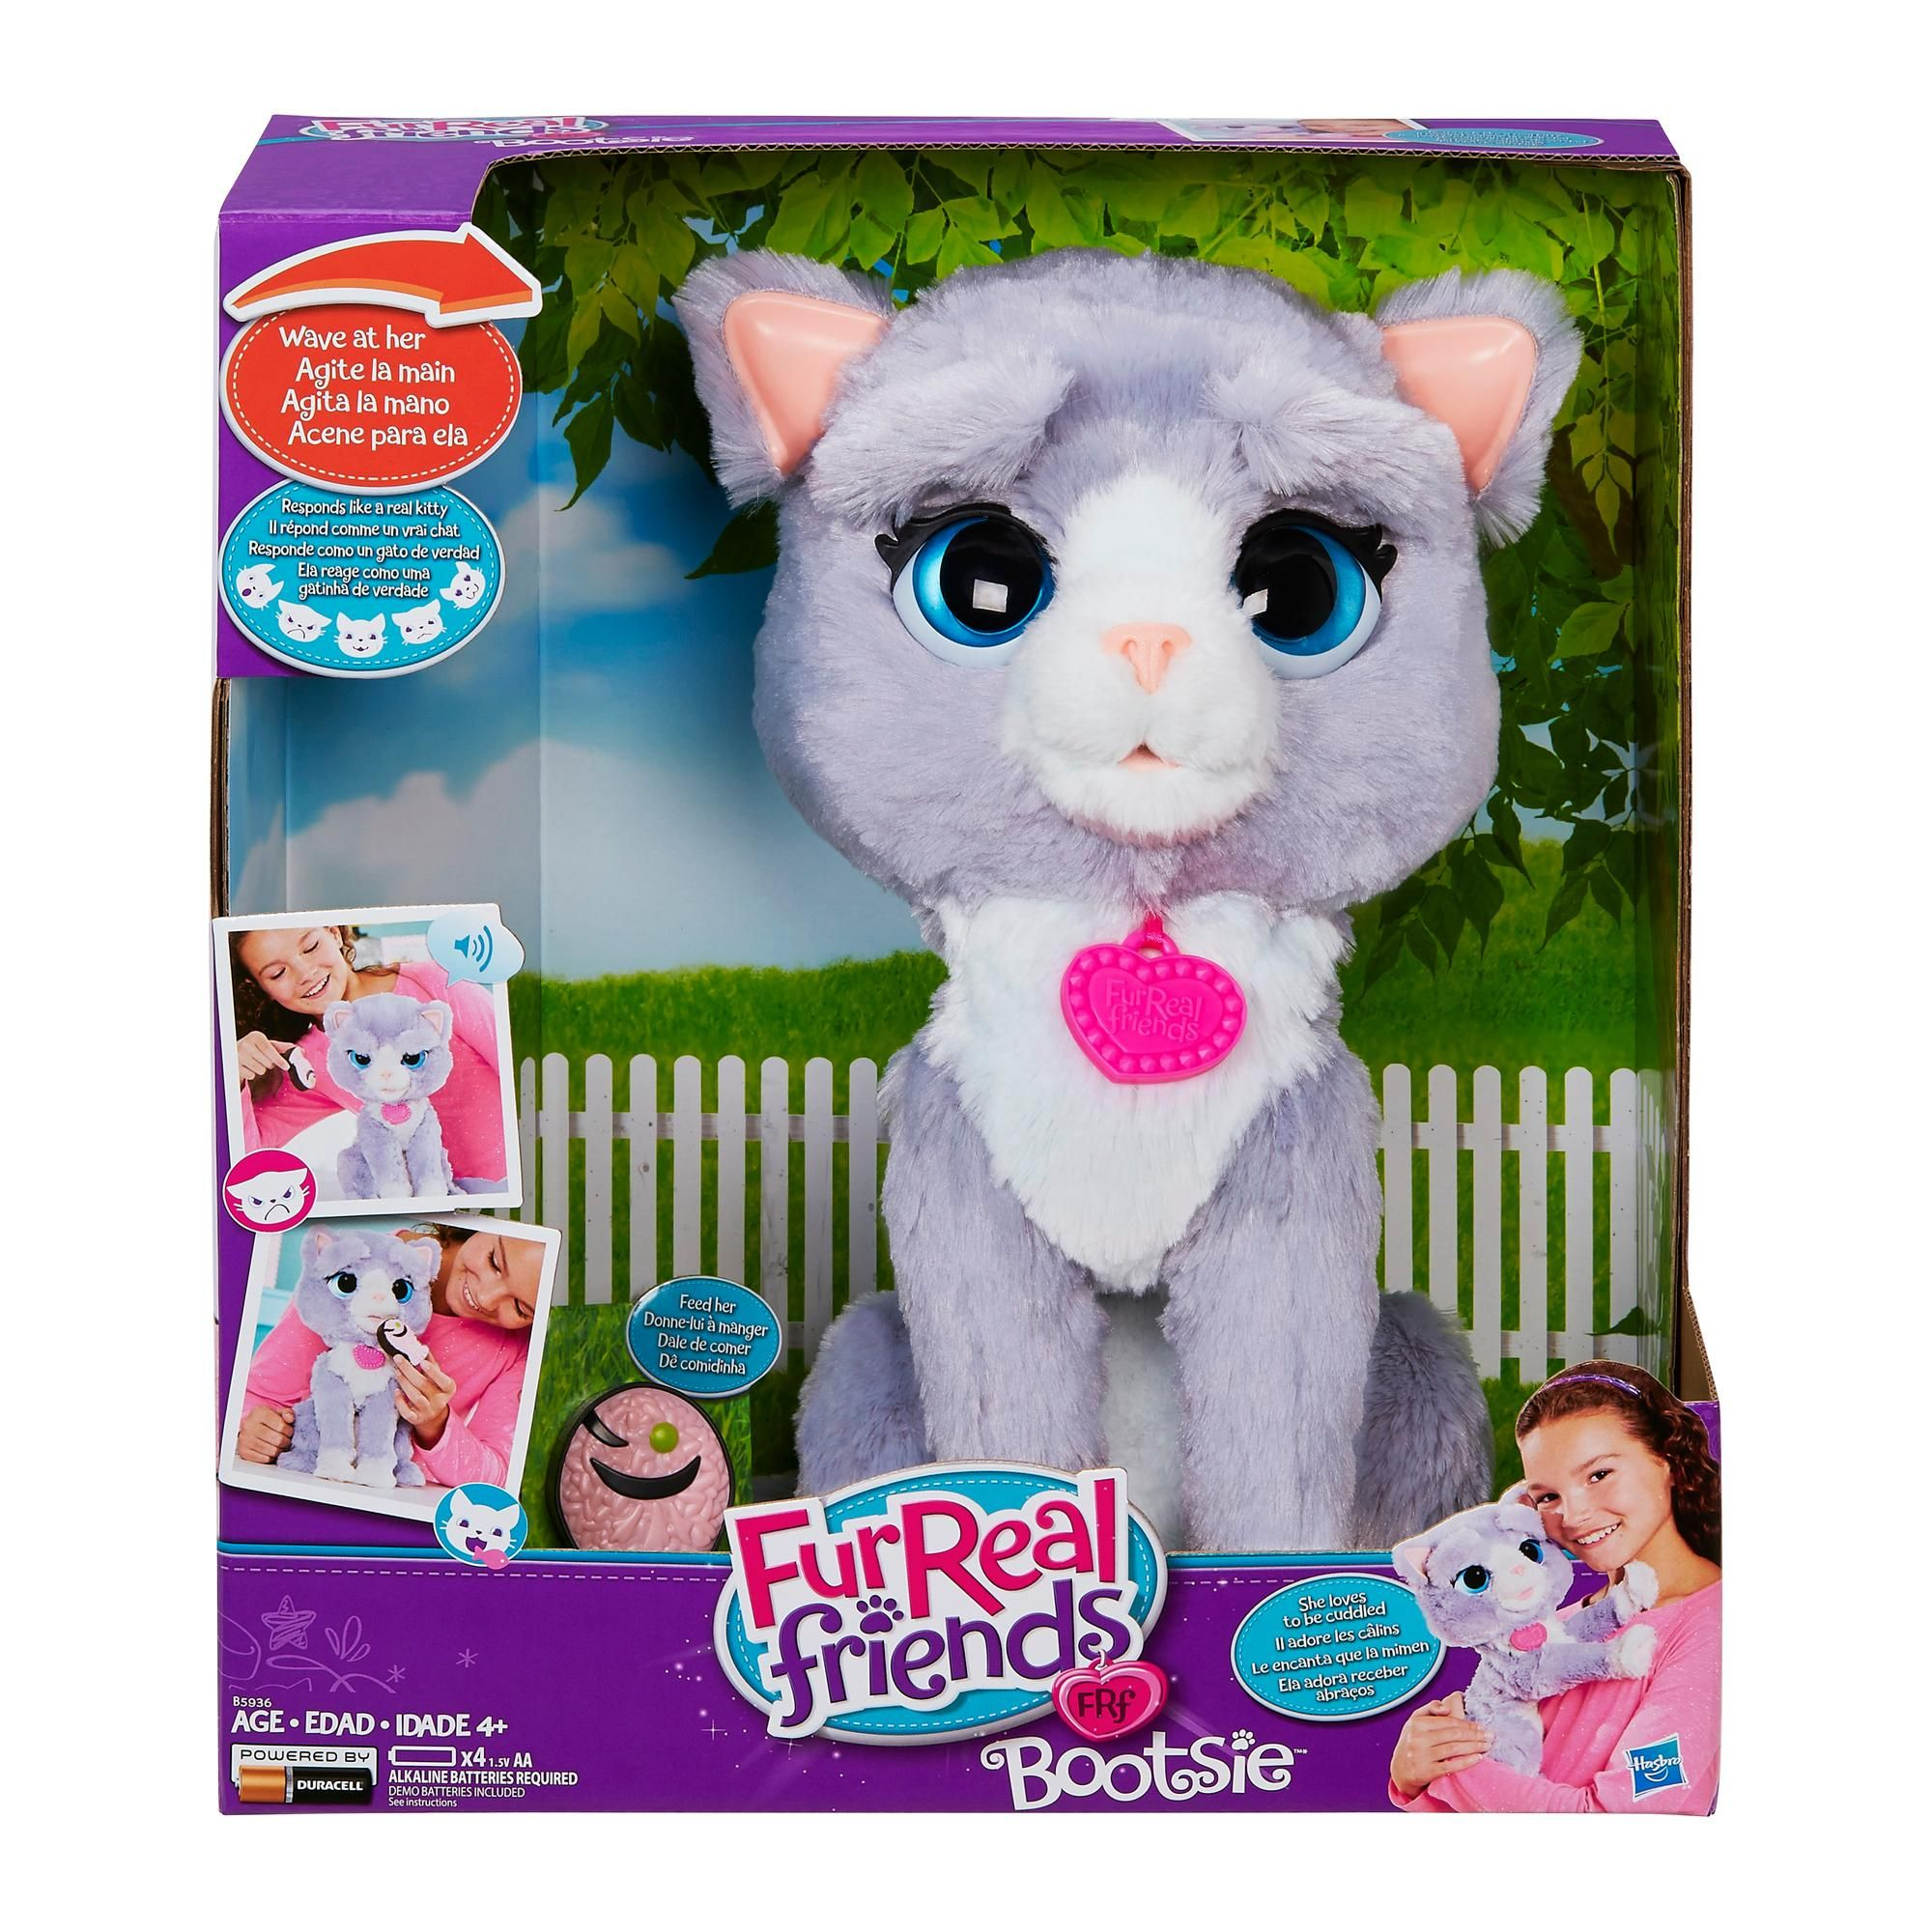 Amazoncom Furreal Friends Bootsie Toys & Games Christmas Gifts For